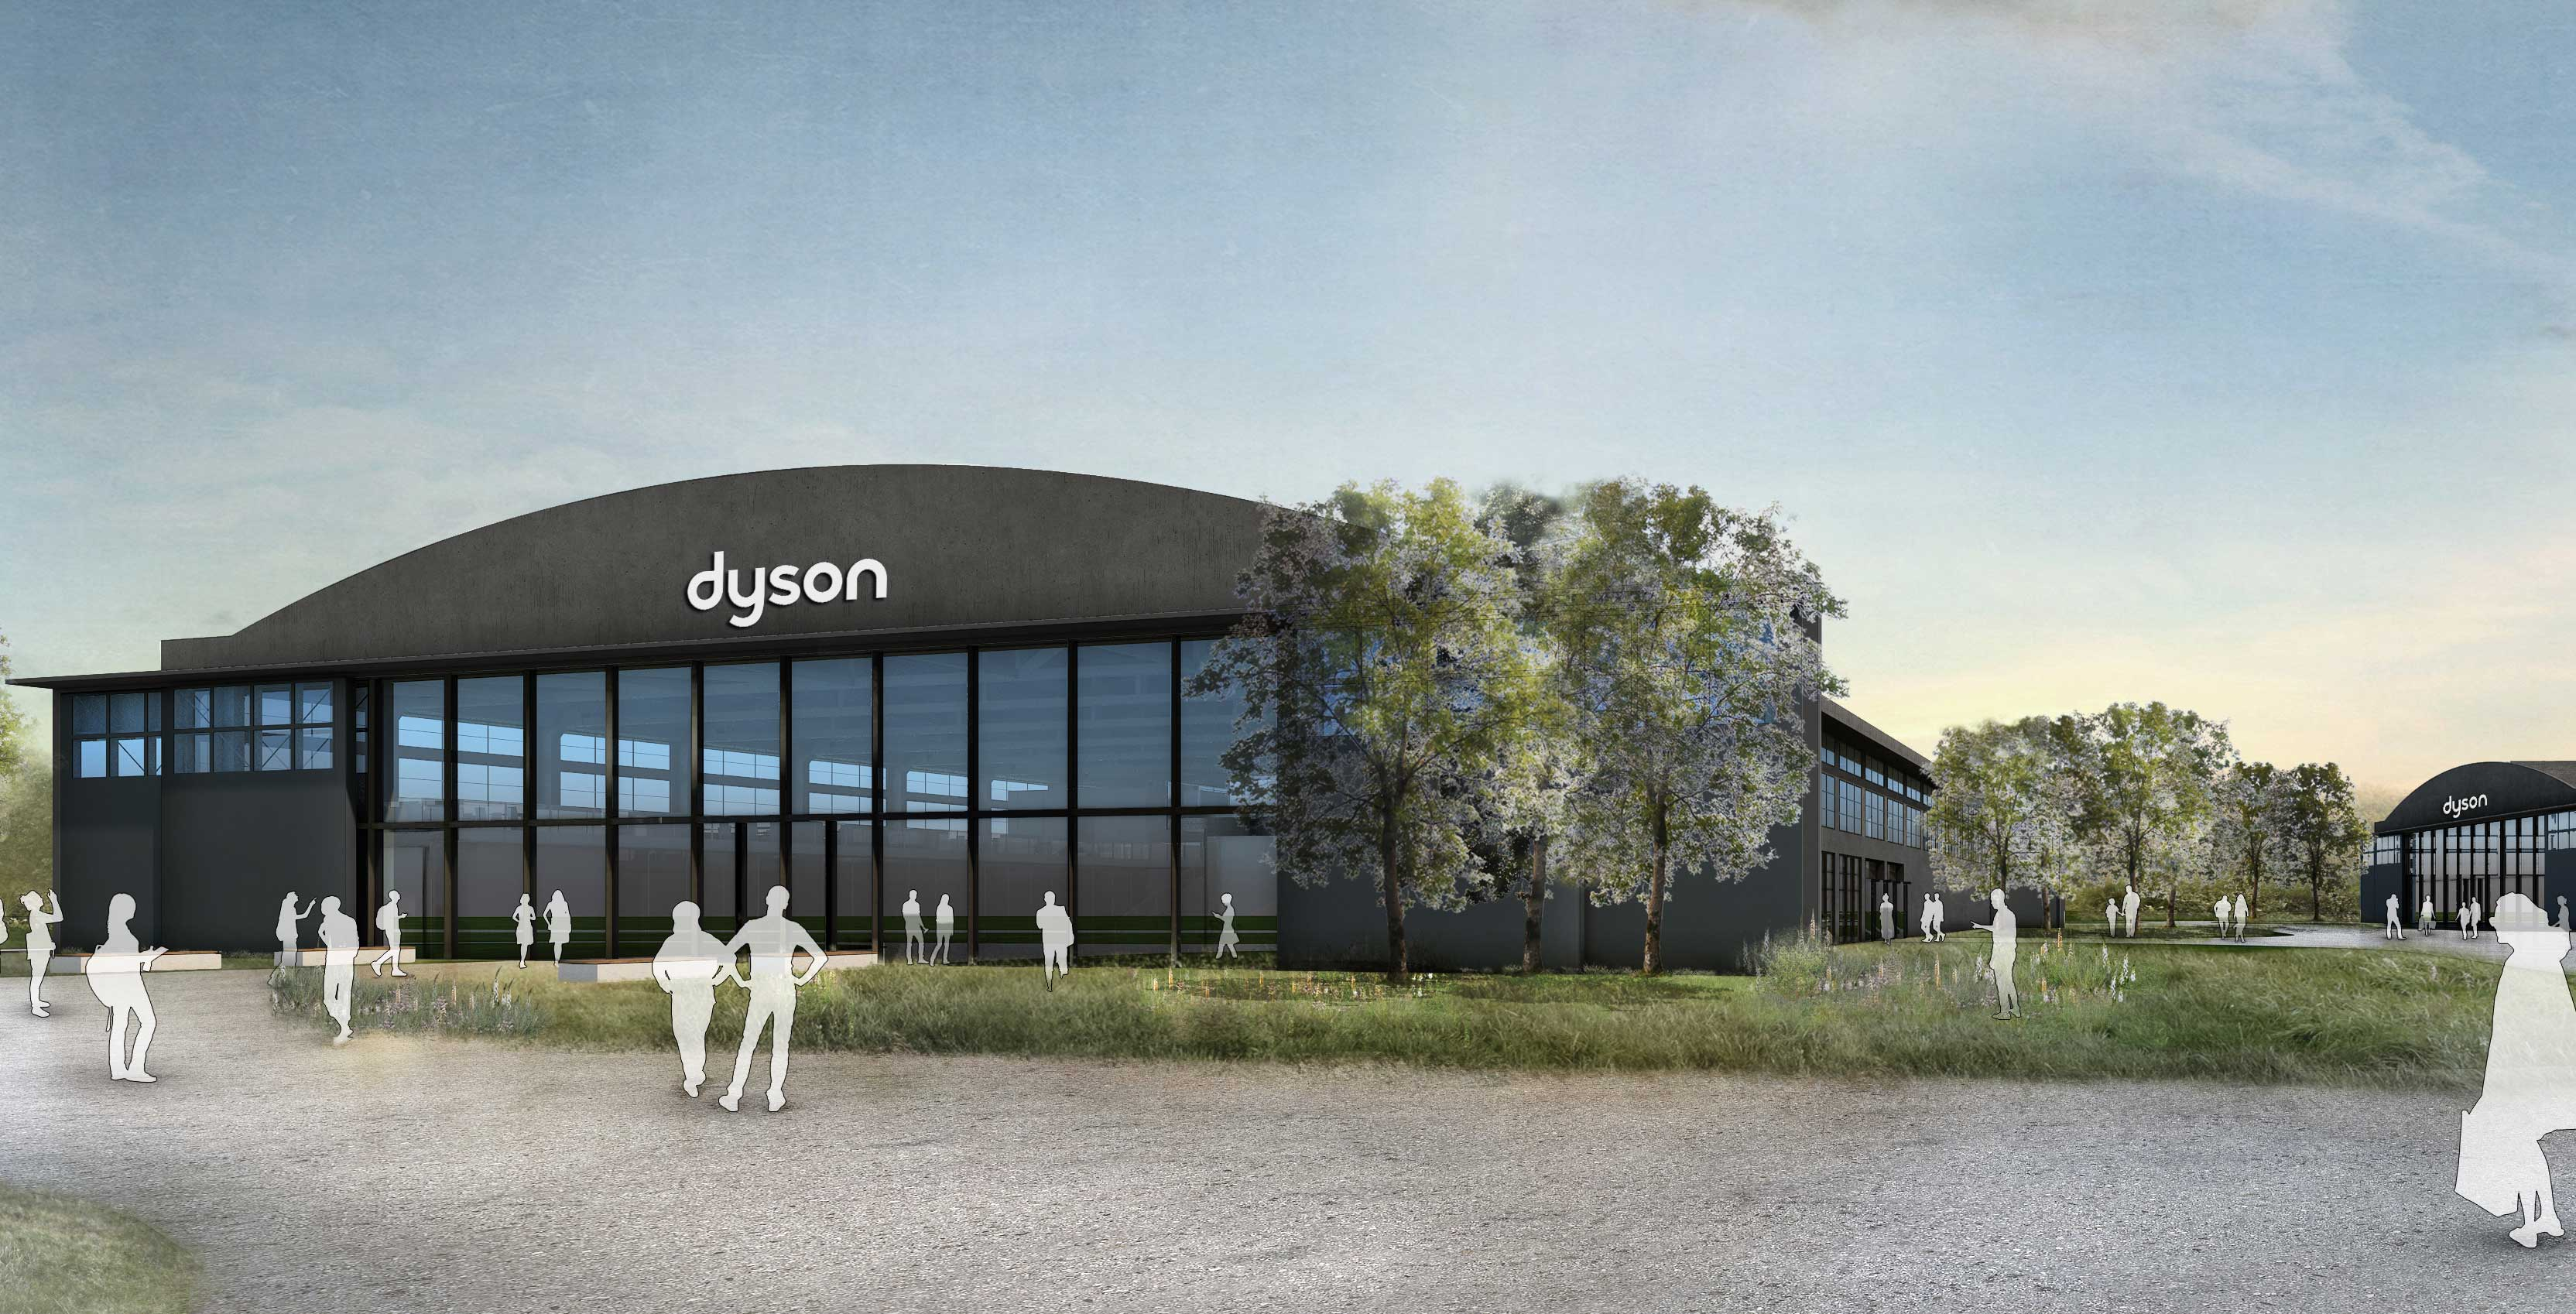 An image of the Dyson headquarters